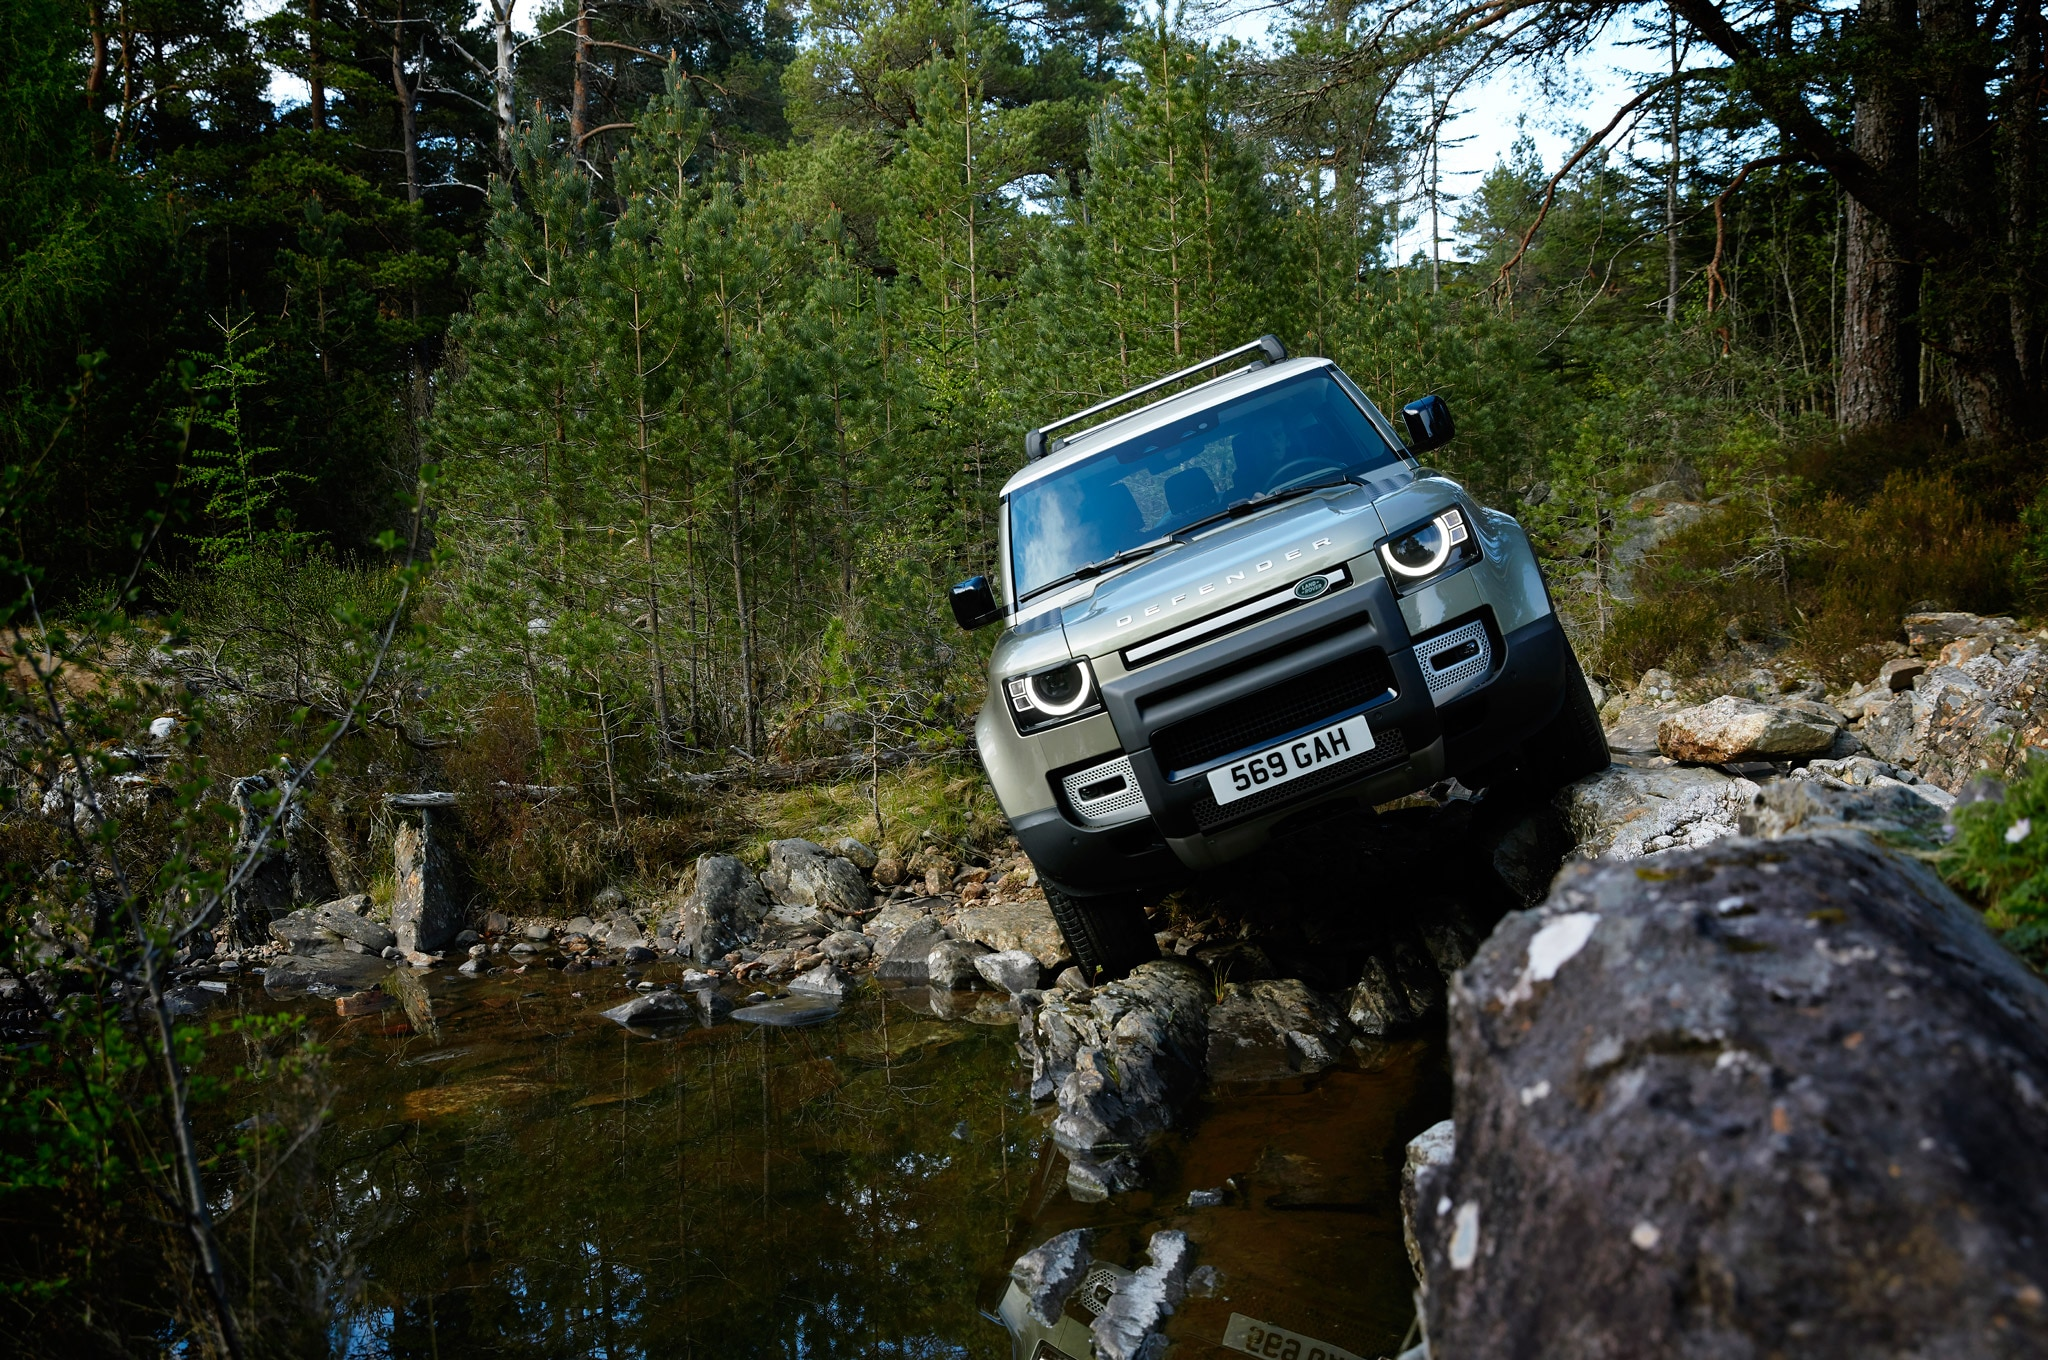 2020 land rover defender 90 off road rocks 02